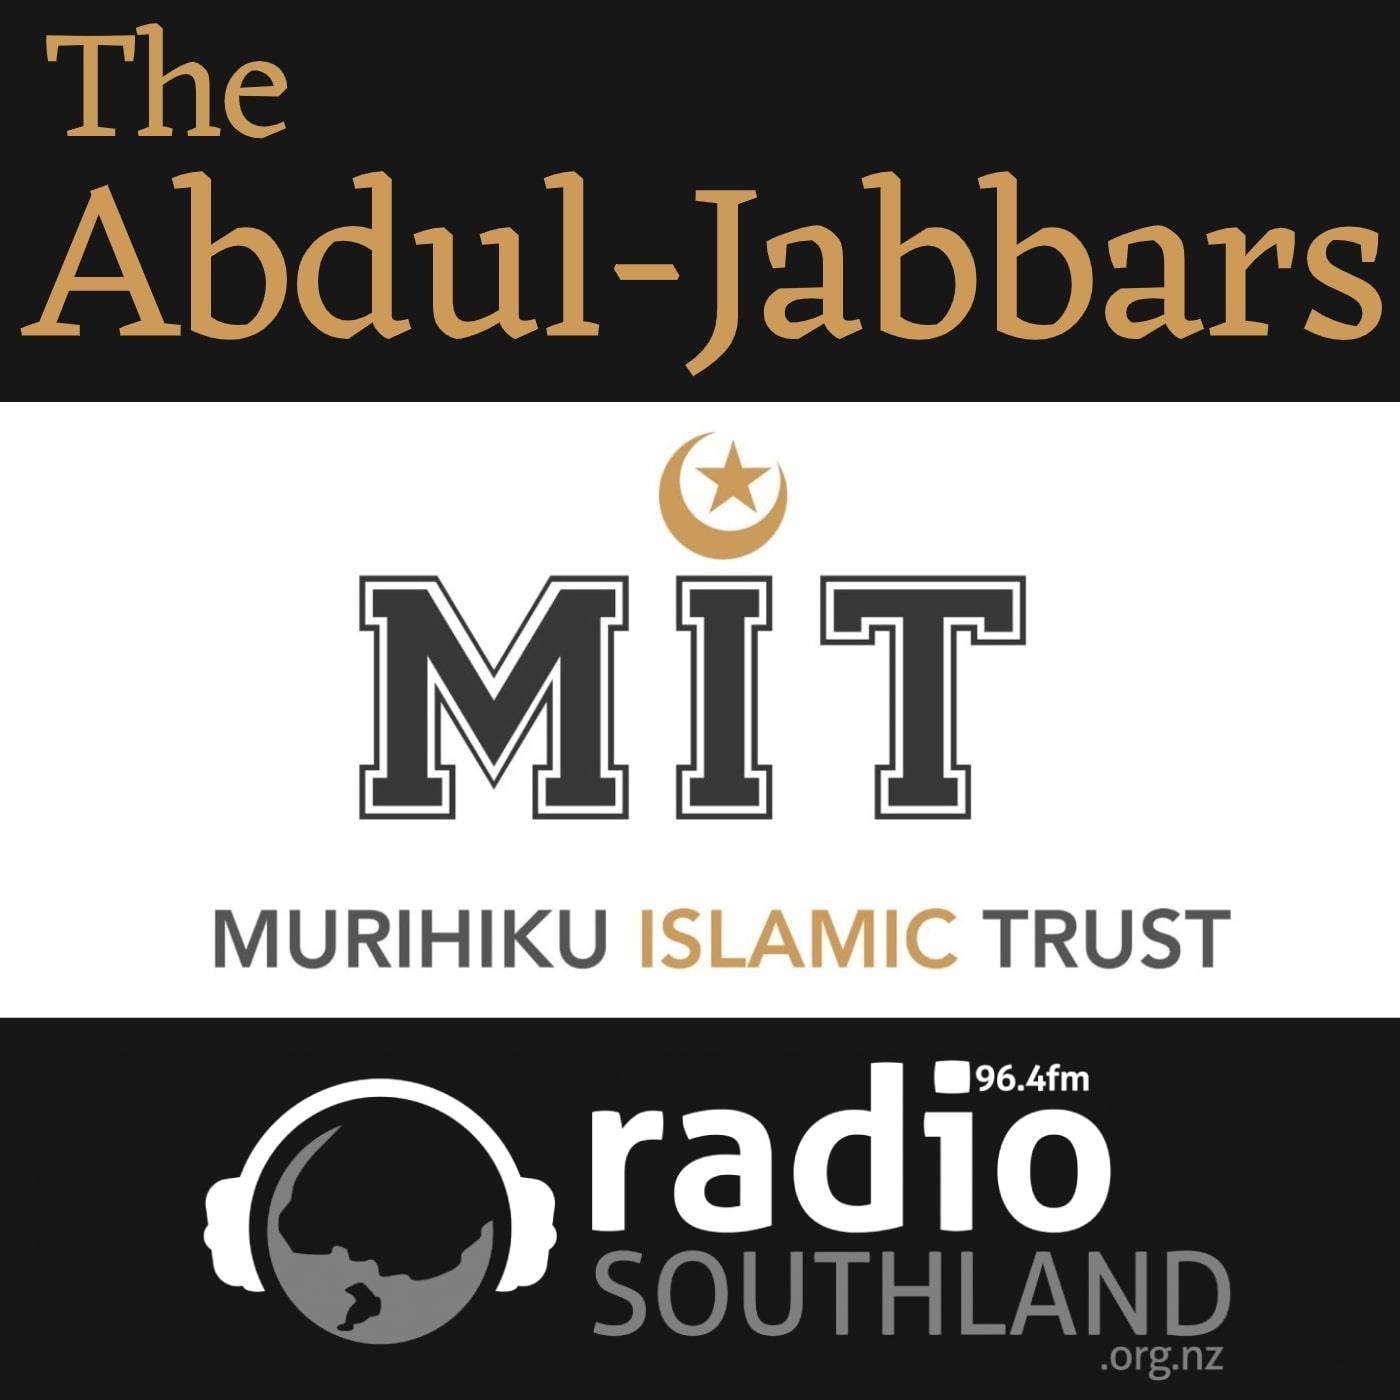 The Abdul-Jabbars